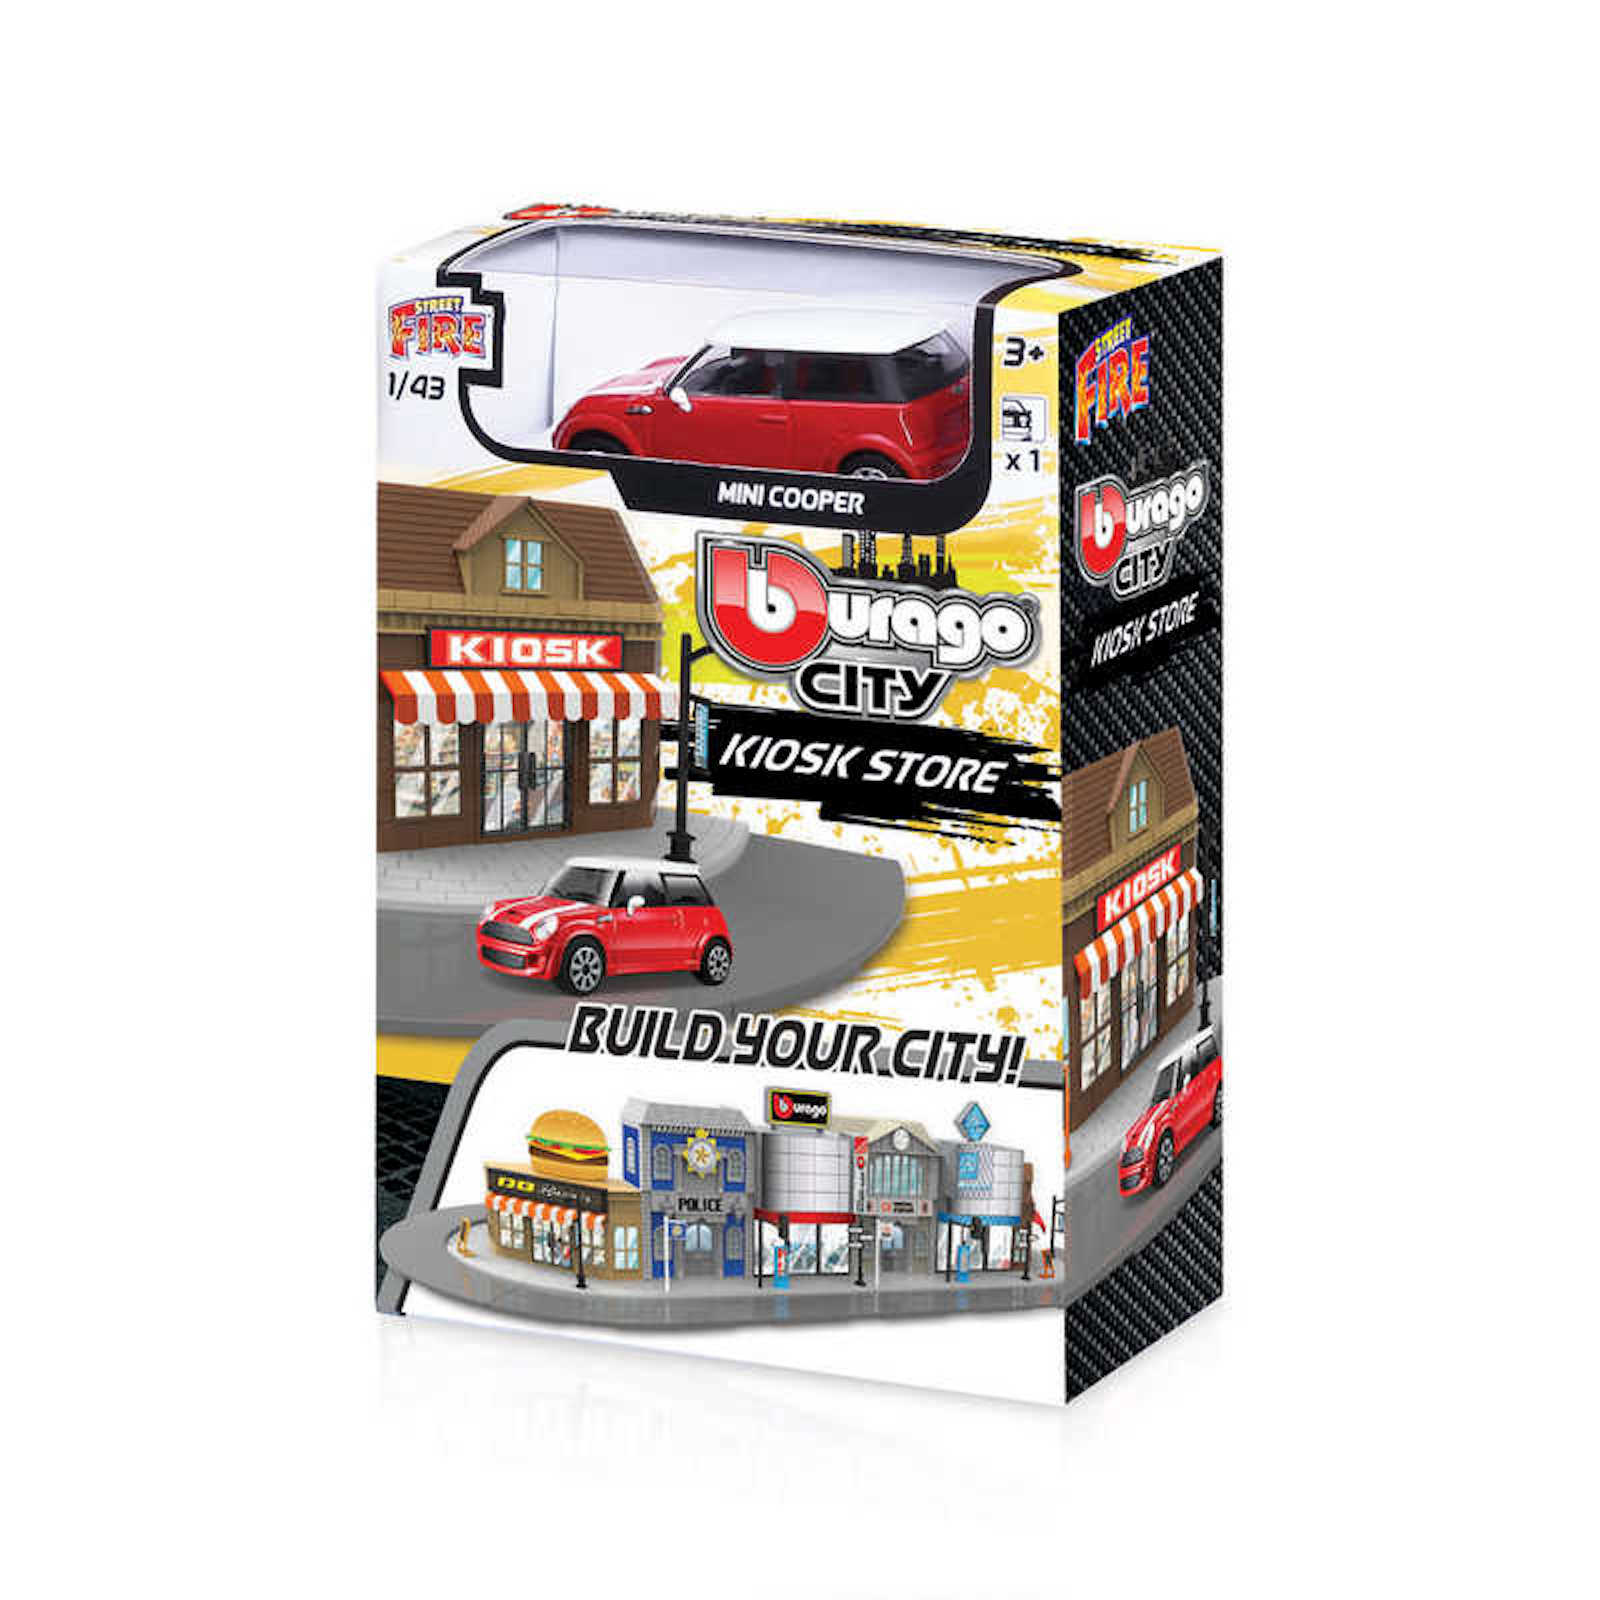 Build your City Kiosk Store Shop Mini Cooper Bburago Street Fire 1:43 Scale Model Toy Childs Kids Dads Birthday Present Gift